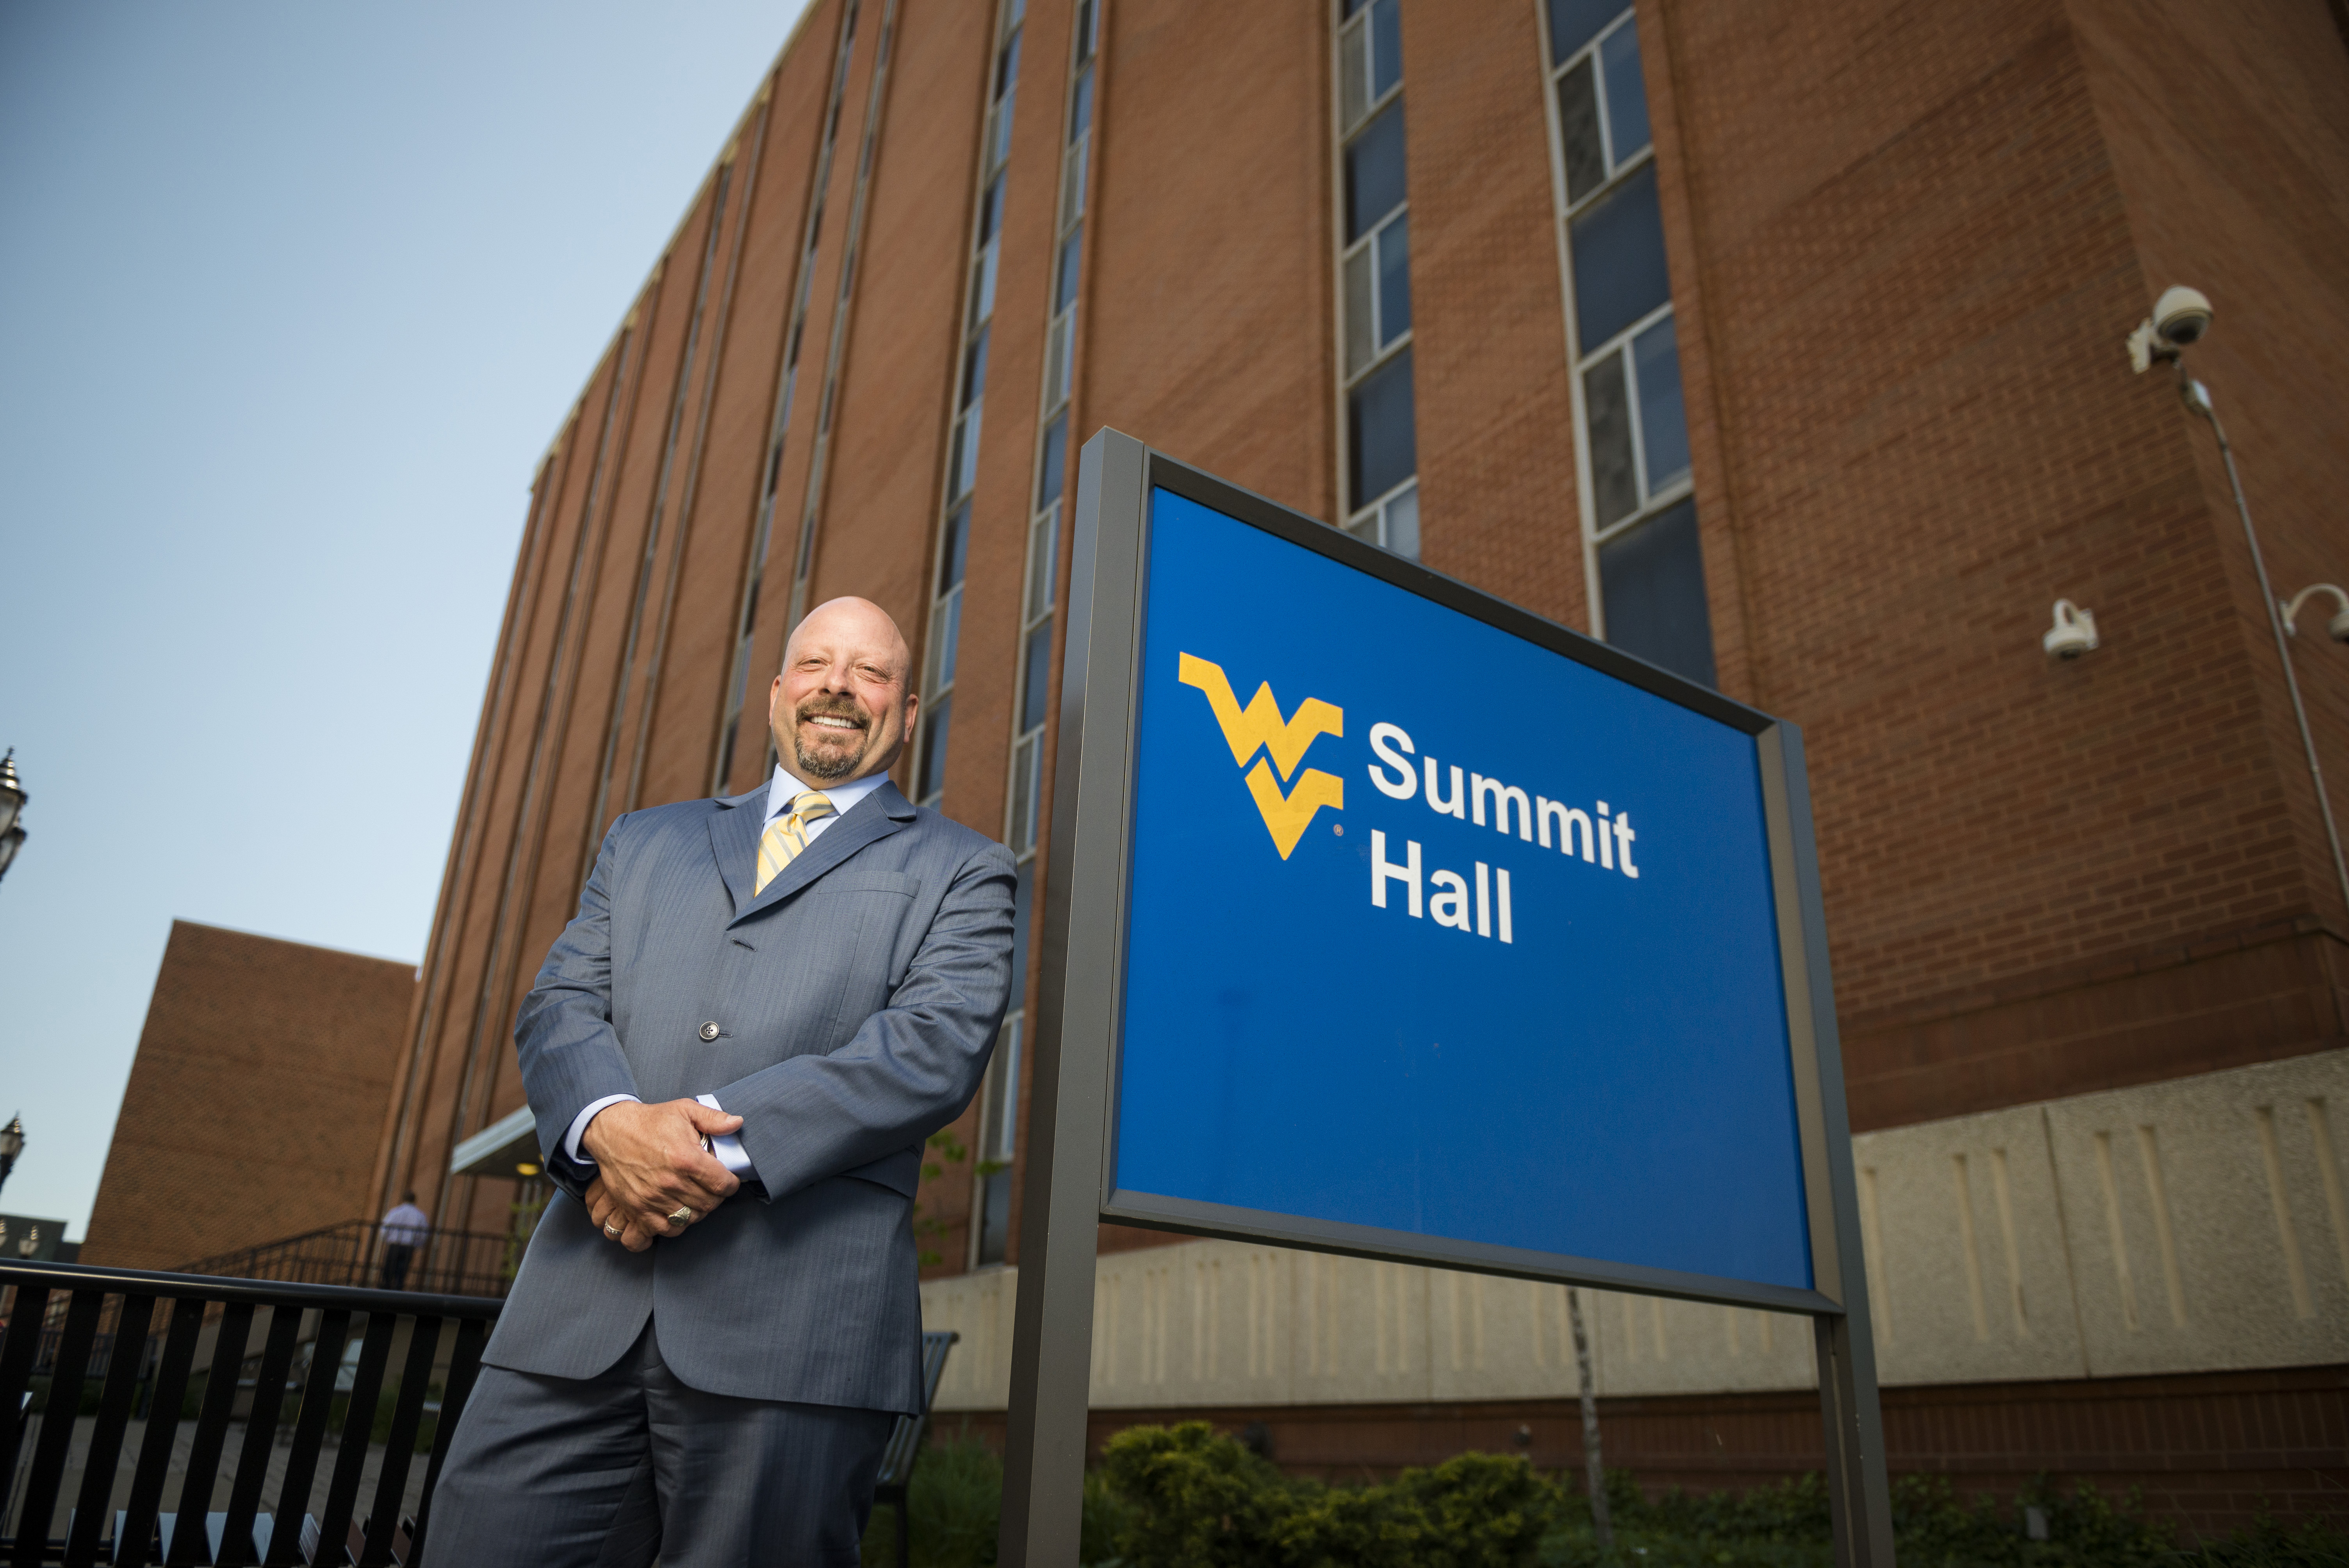 Bill Bayless stands beside WVU's Summit Hall sign